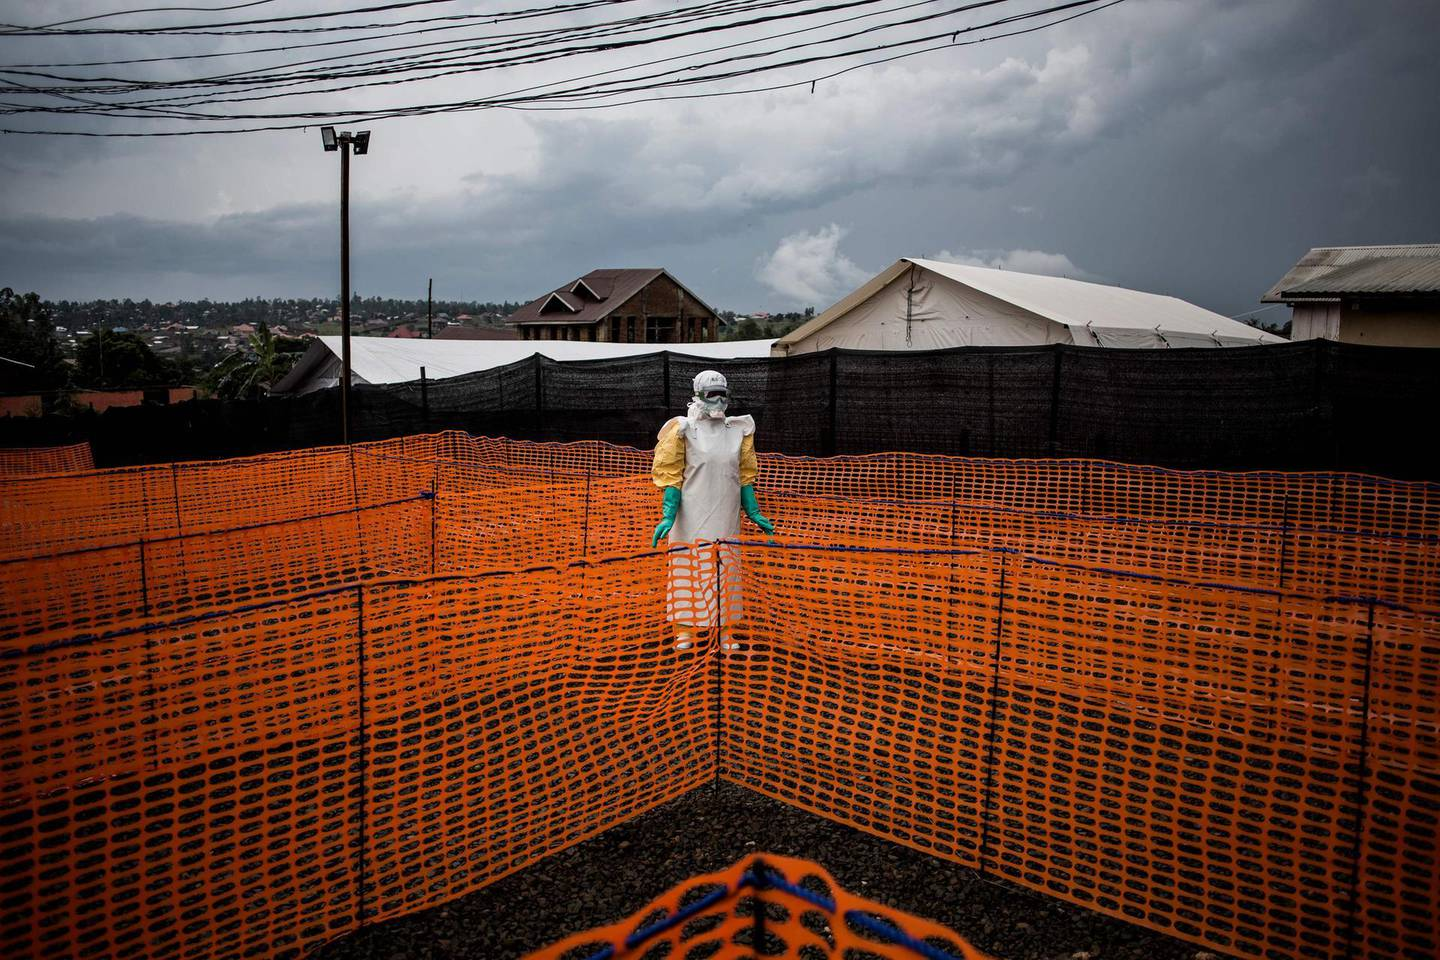 """(FILES) In this file photo taken on November 07, 2018 A health worker waits to handle a new unconfirmed Ebola patient at a newly build MSF (Doctors Without Borders) supported Ebola treatment centre (ETC) on November 7, 2018 in Bunia, Democratic Republic of the Congo. A woman died of the Ebola virus disease in eastern Democratic Republic of Congo on February 7, 2021, Congolese Health Minister Eteni Longondo announced, noting the """"resurgence"""" of the disease in the country. / AFP / John WESSELS"""